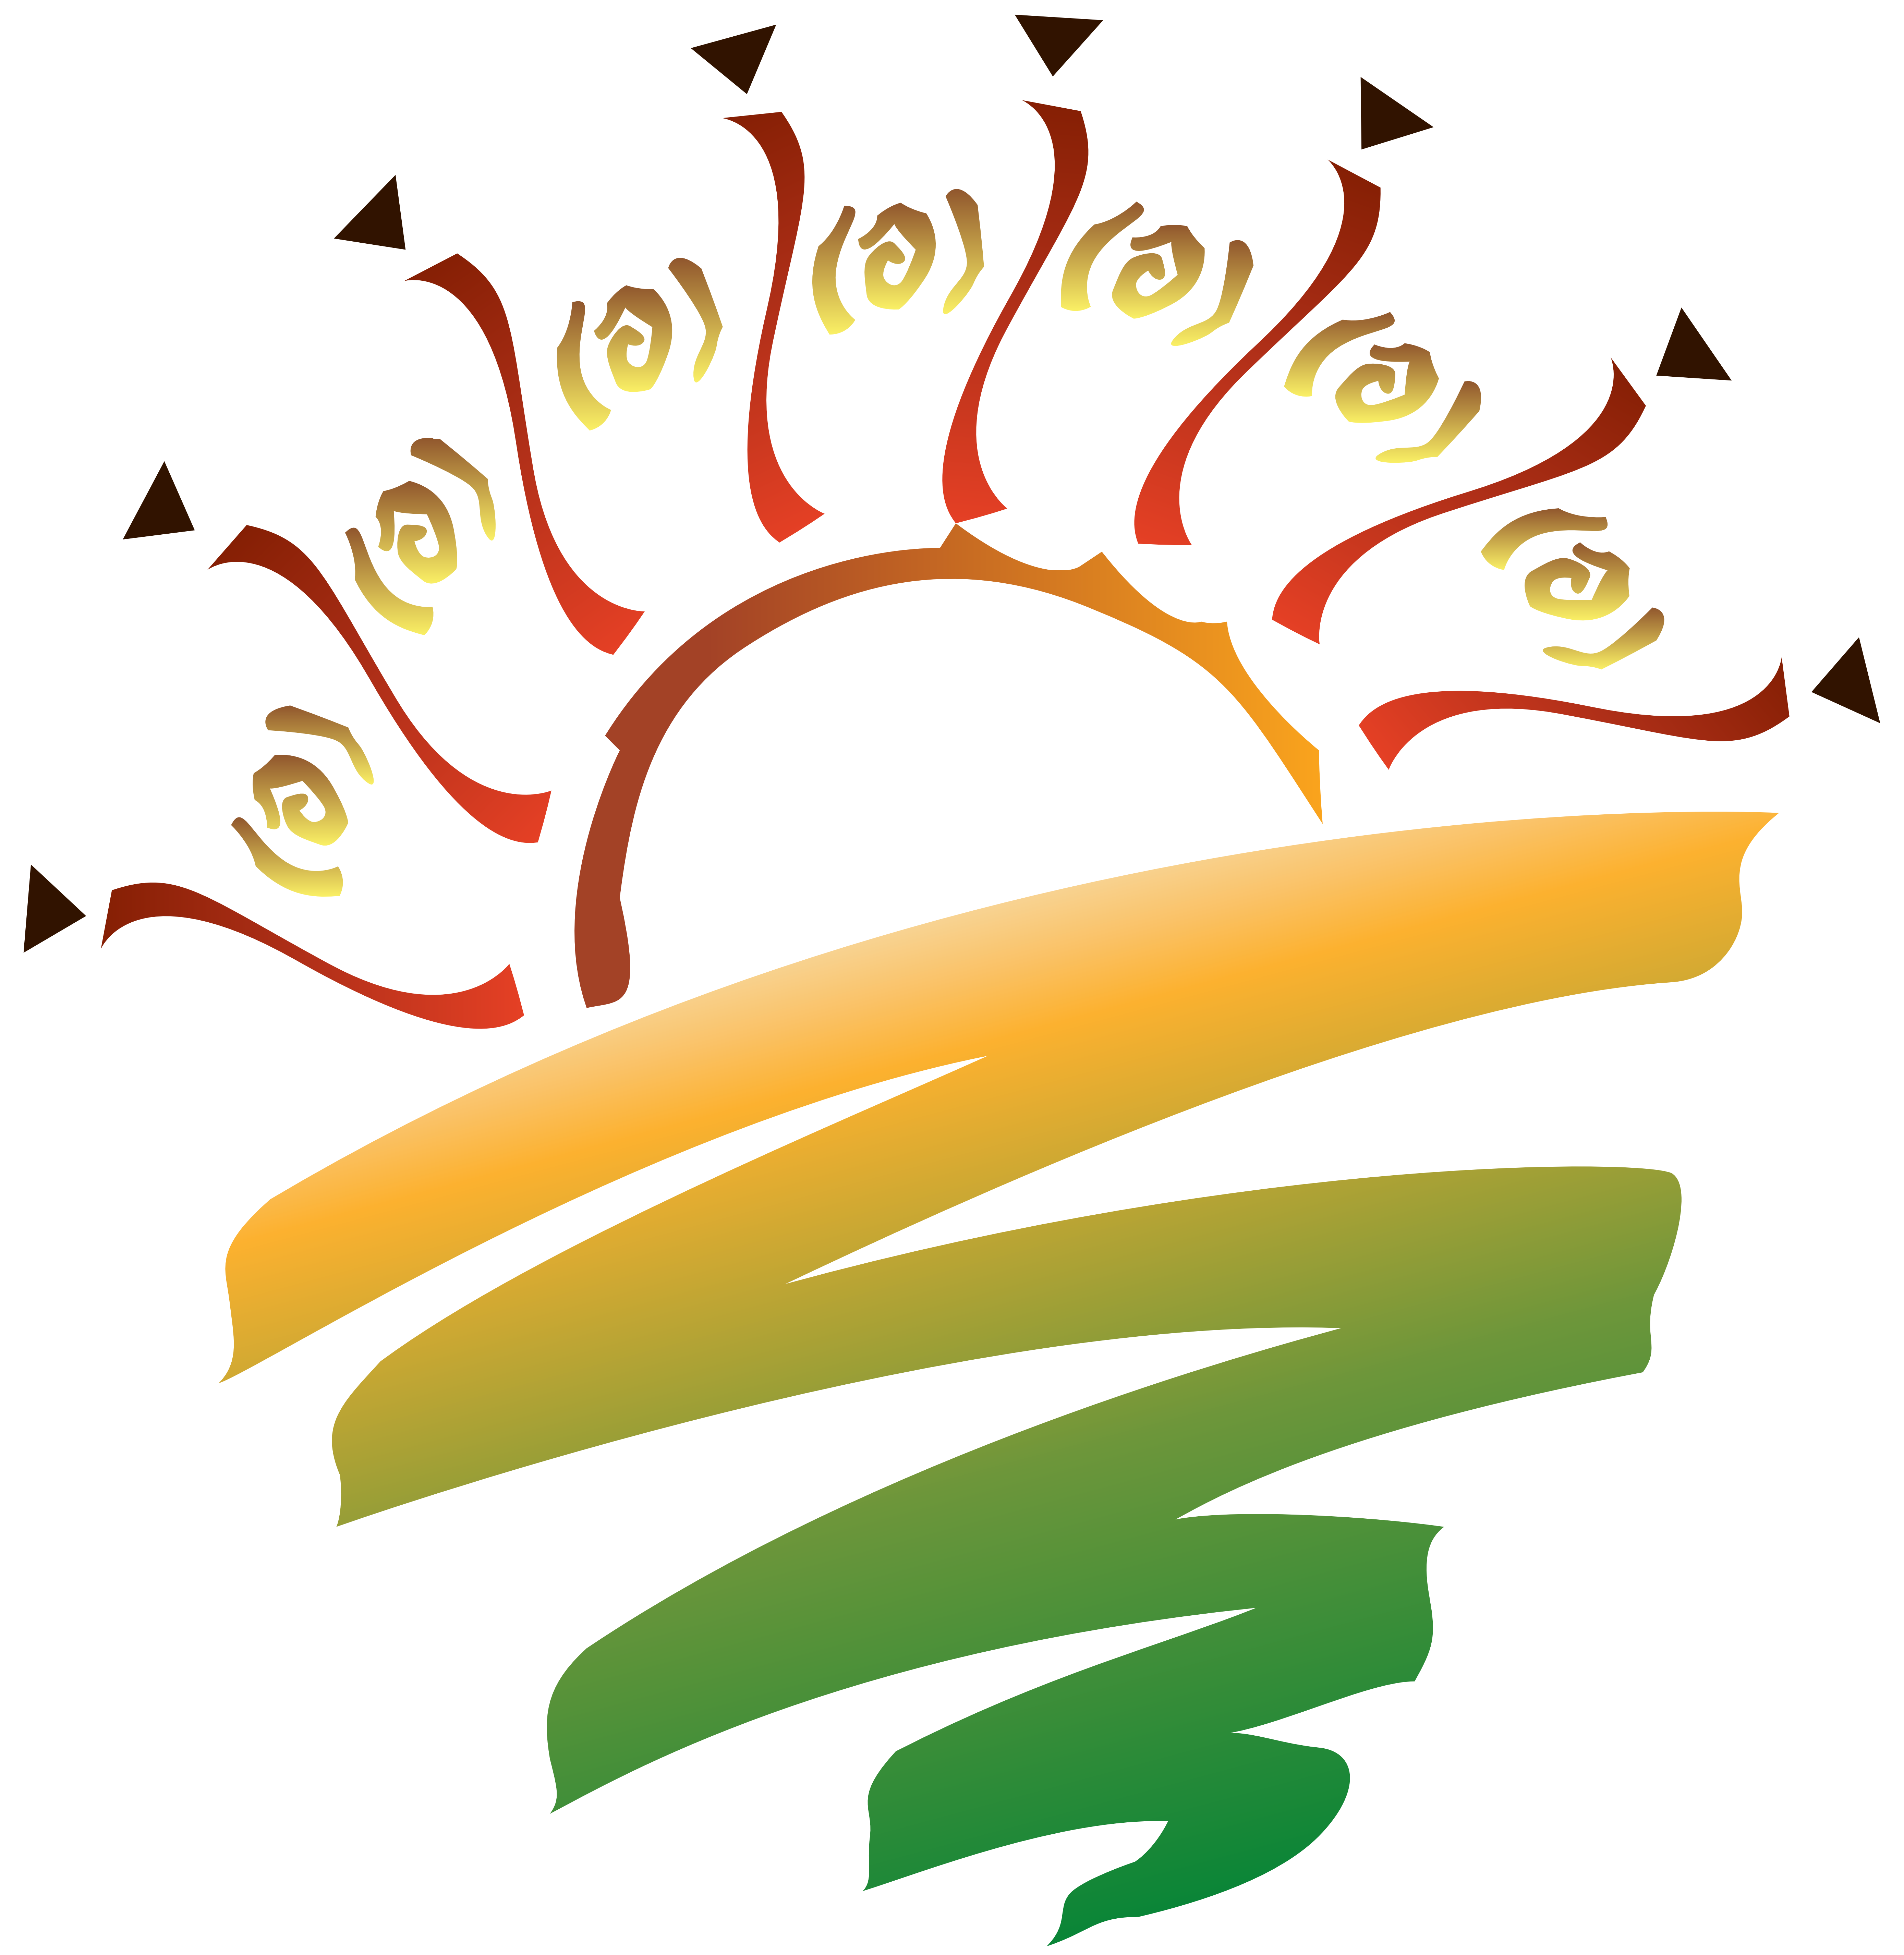 Beach sun palm tree clipart picture freeuse download Palm Tree Sunset Clipart | Clipart Panda - Free Clipart Images picture freeuse download